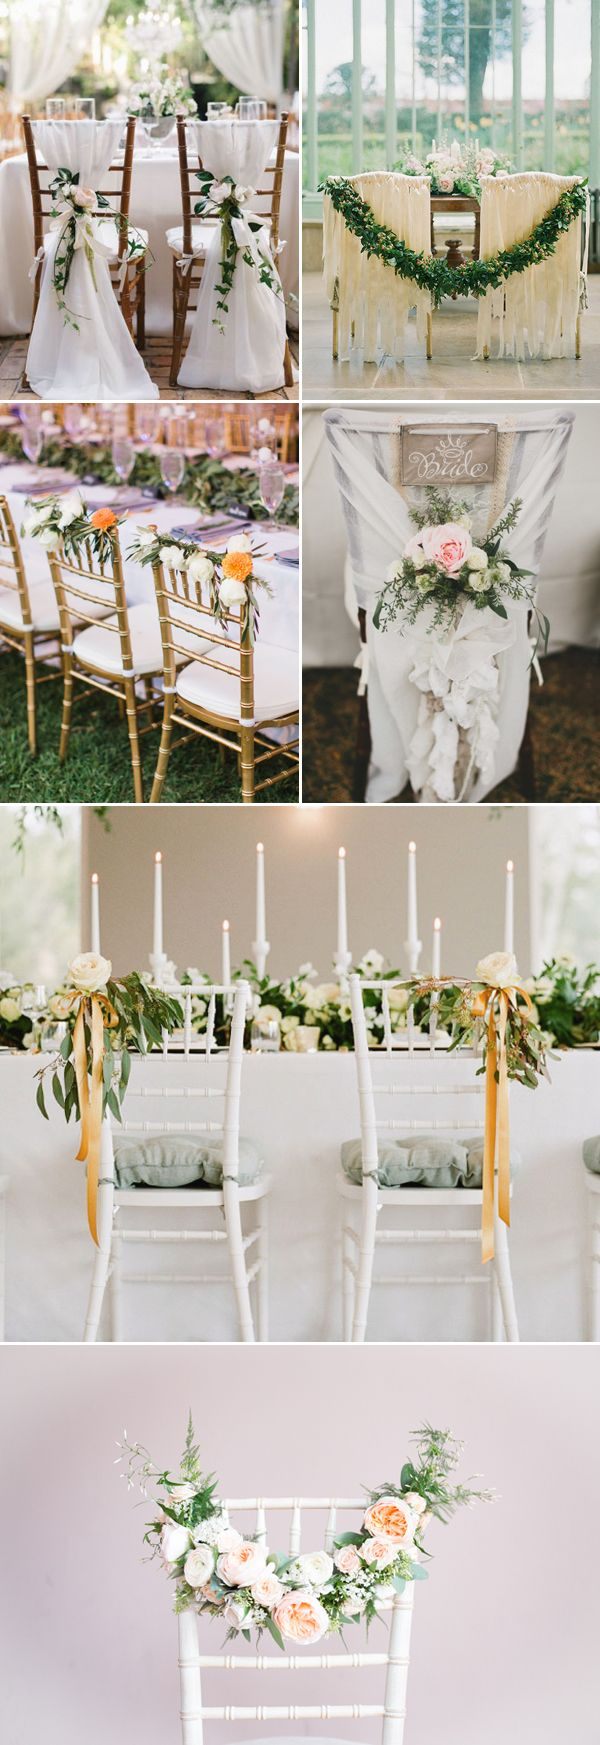 30 Creative Chair Decor Ideas for Spring Weddings